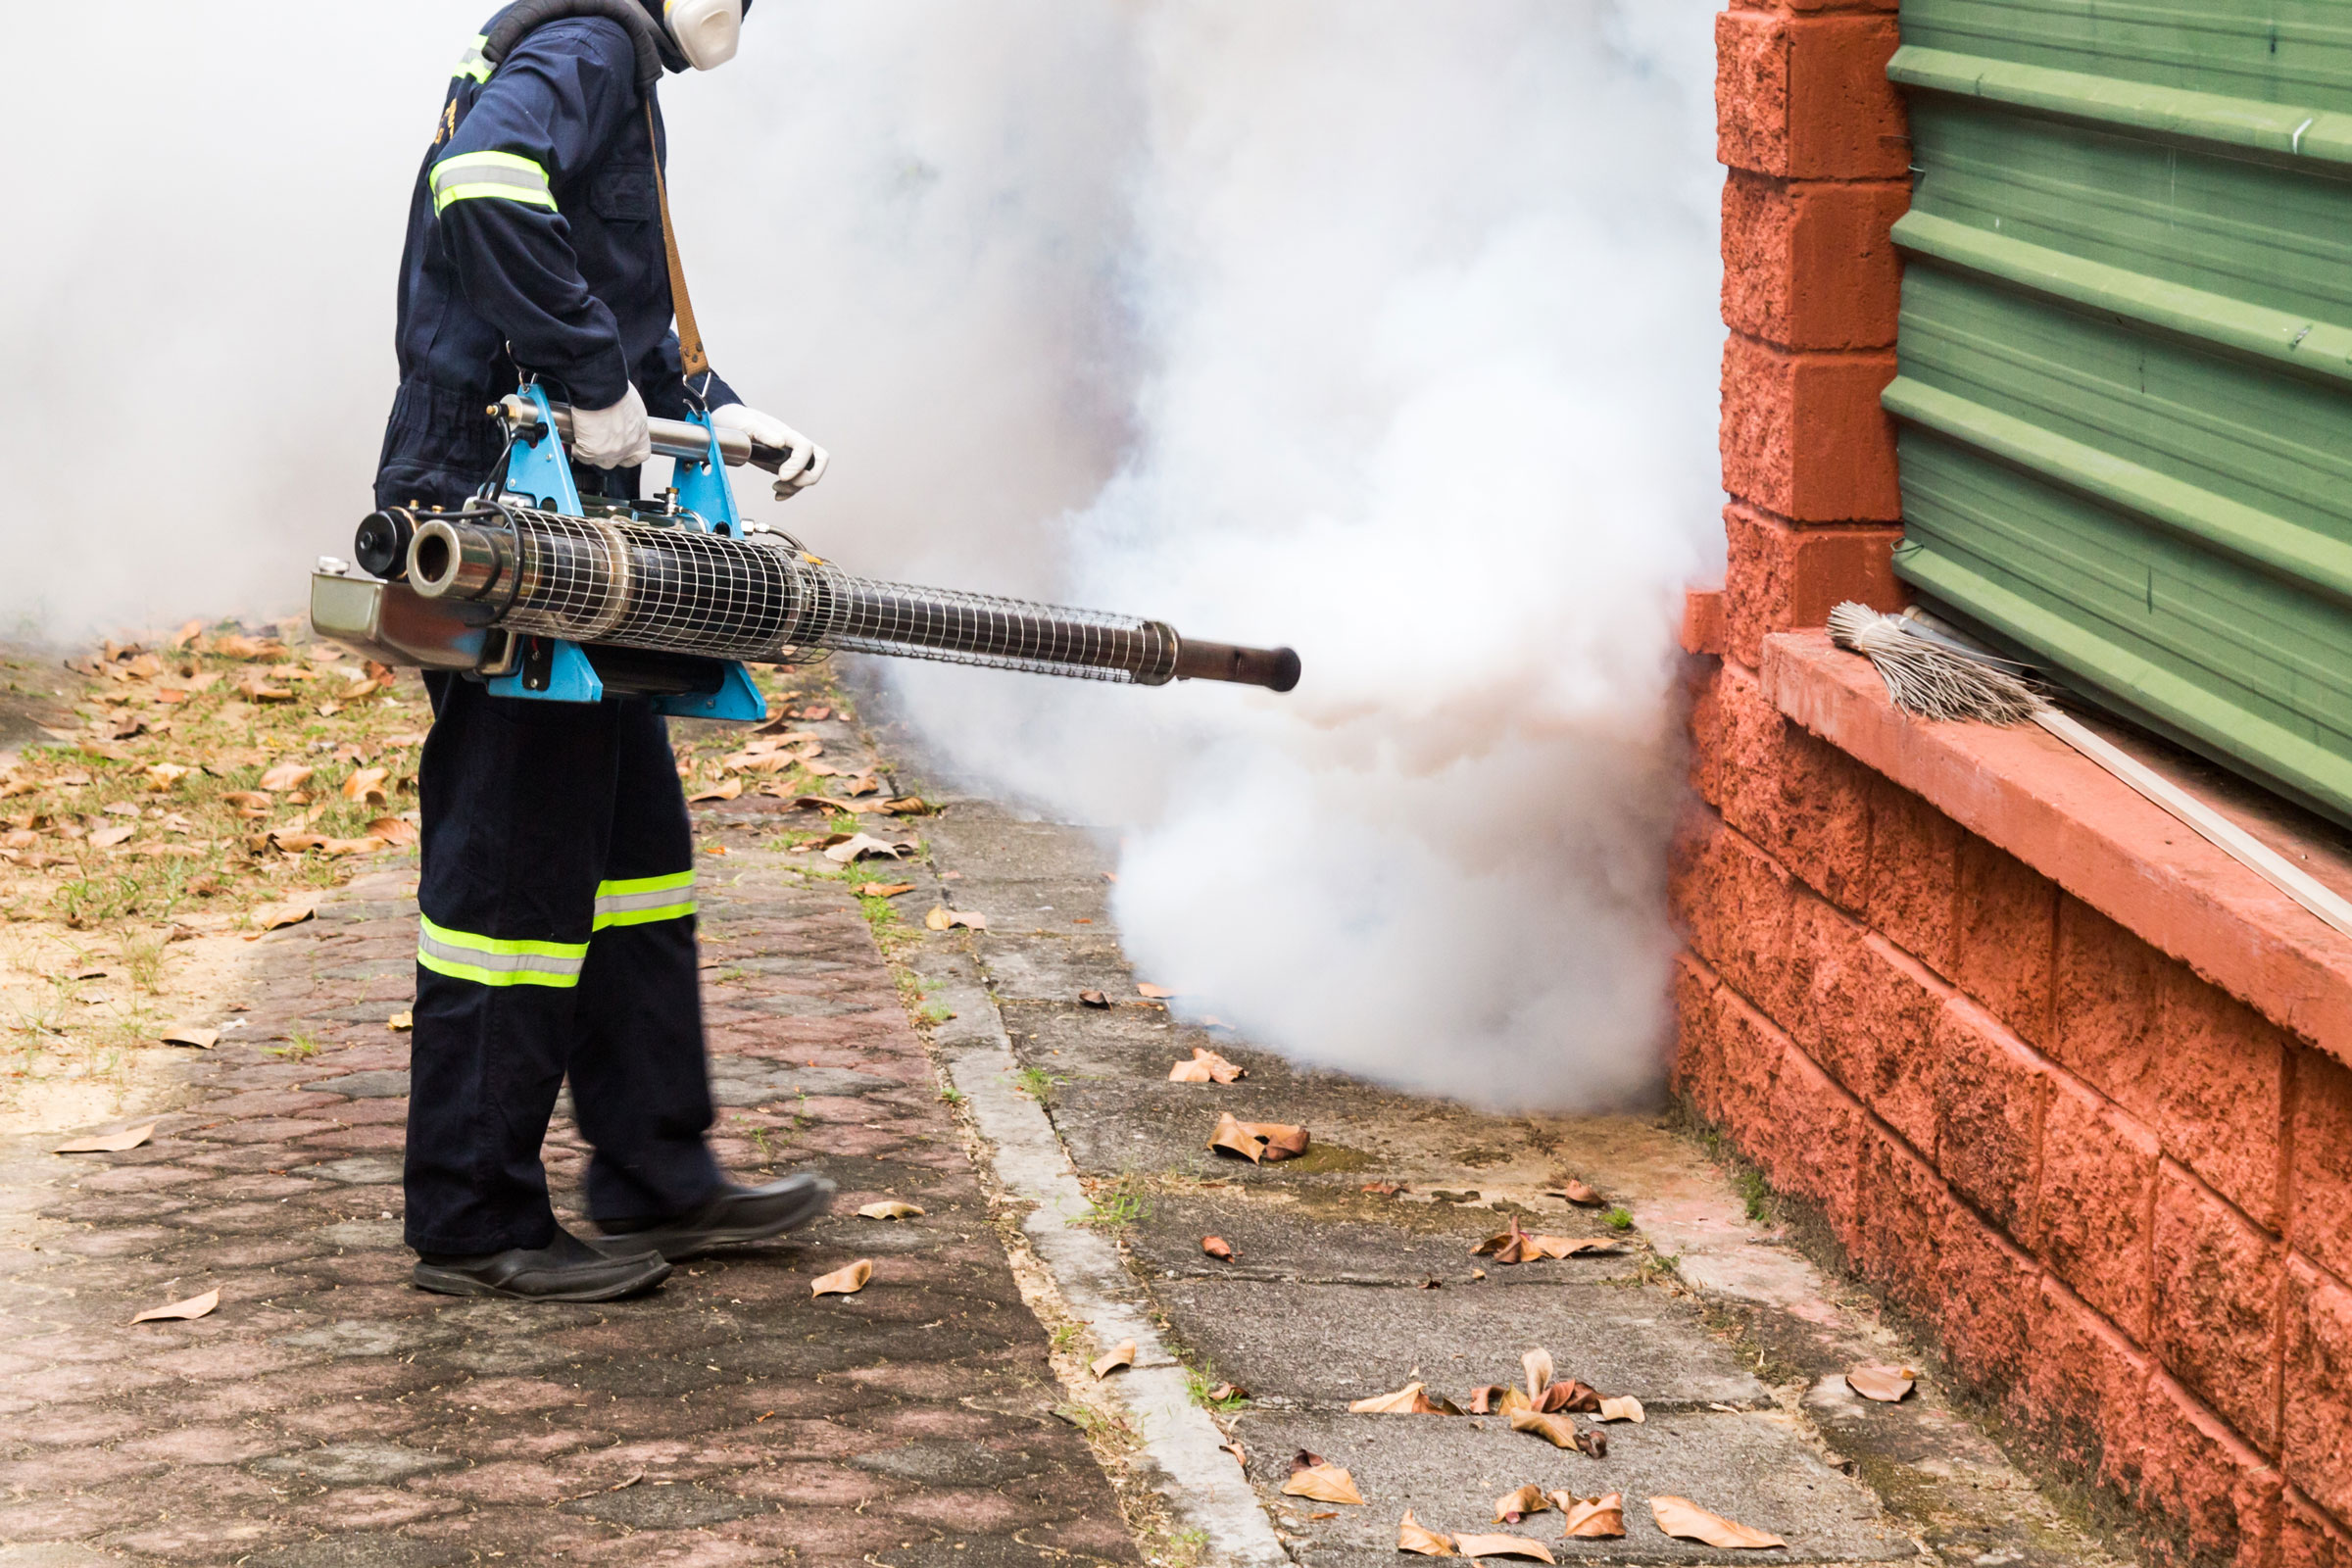 worker-fogging-residential-area-with-insecticides-PCMFT9M